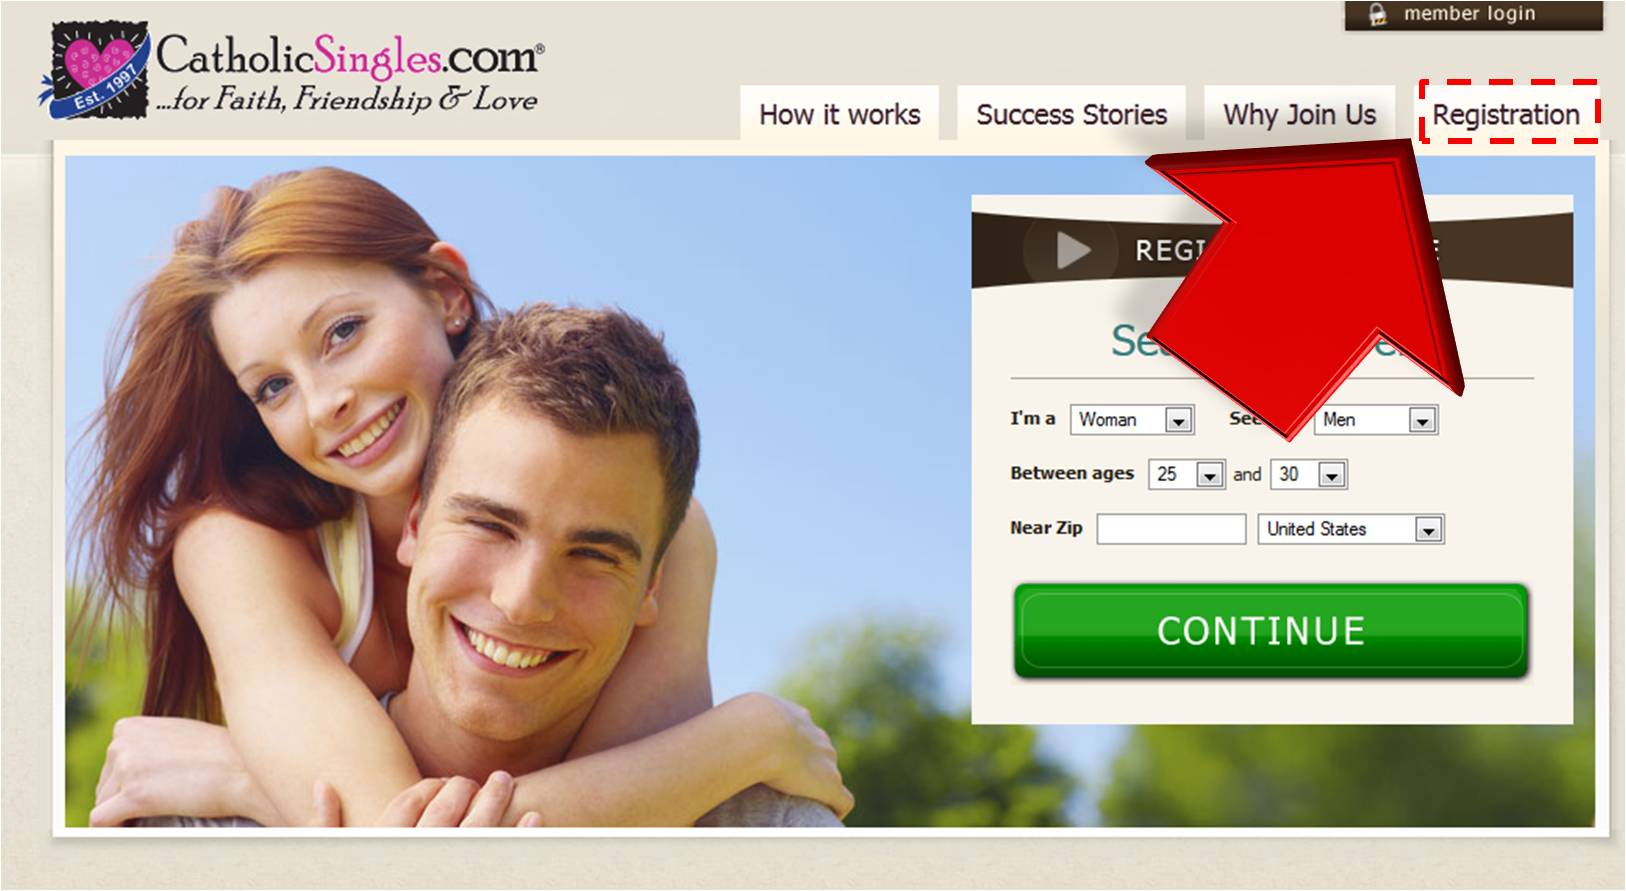 antrim catholic singles Meet tons of available women in antrim on mingle2com — the best online dating site for antrim singles sign up now for immediate access to our antrim personal ads and find hundreds of attractive single women looking for love, sex, and fun in antrim.